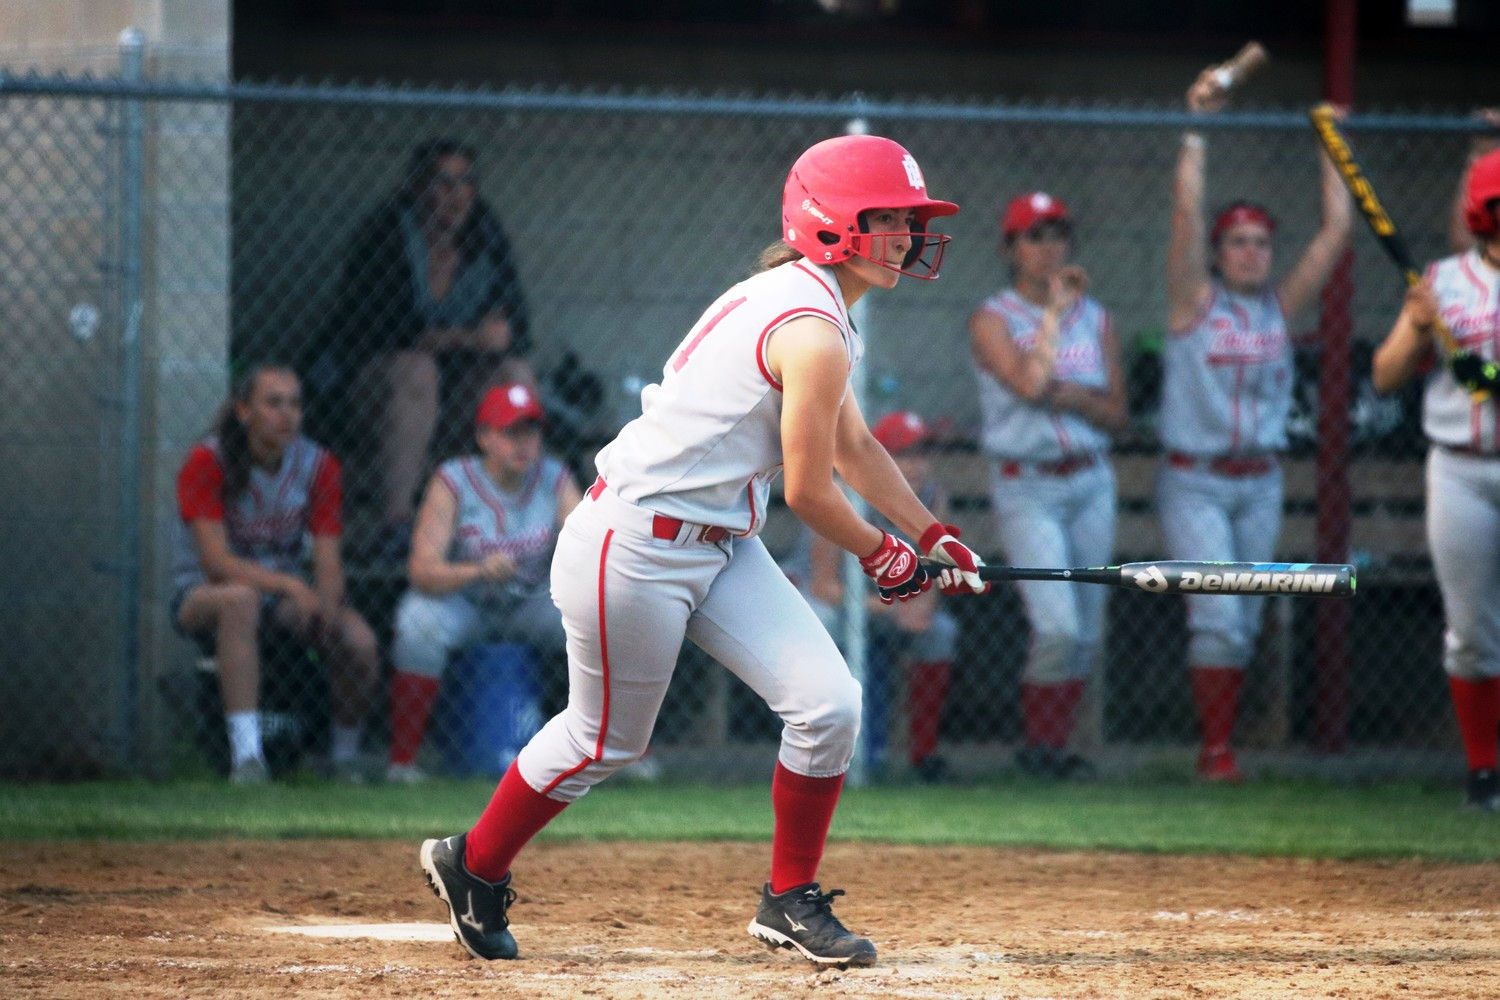 Sadie Patterson of EP gets a hit